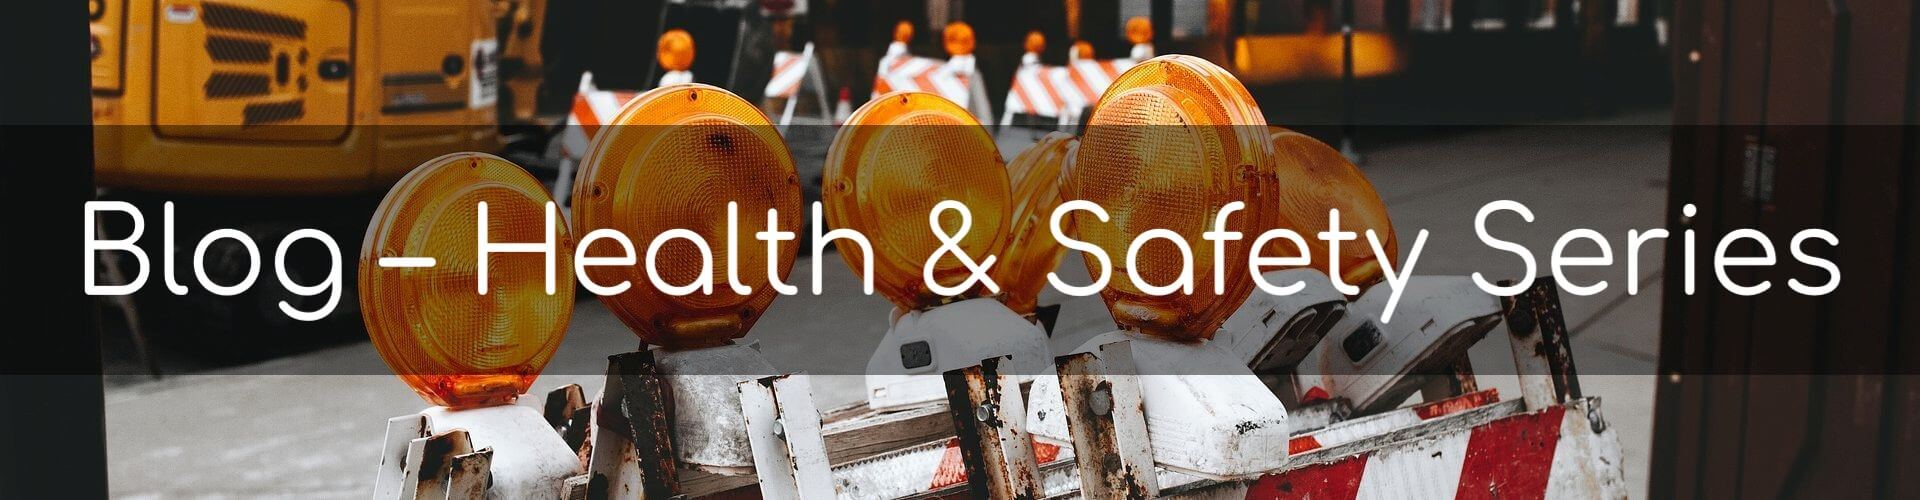 Blog - The Health & Safety Series